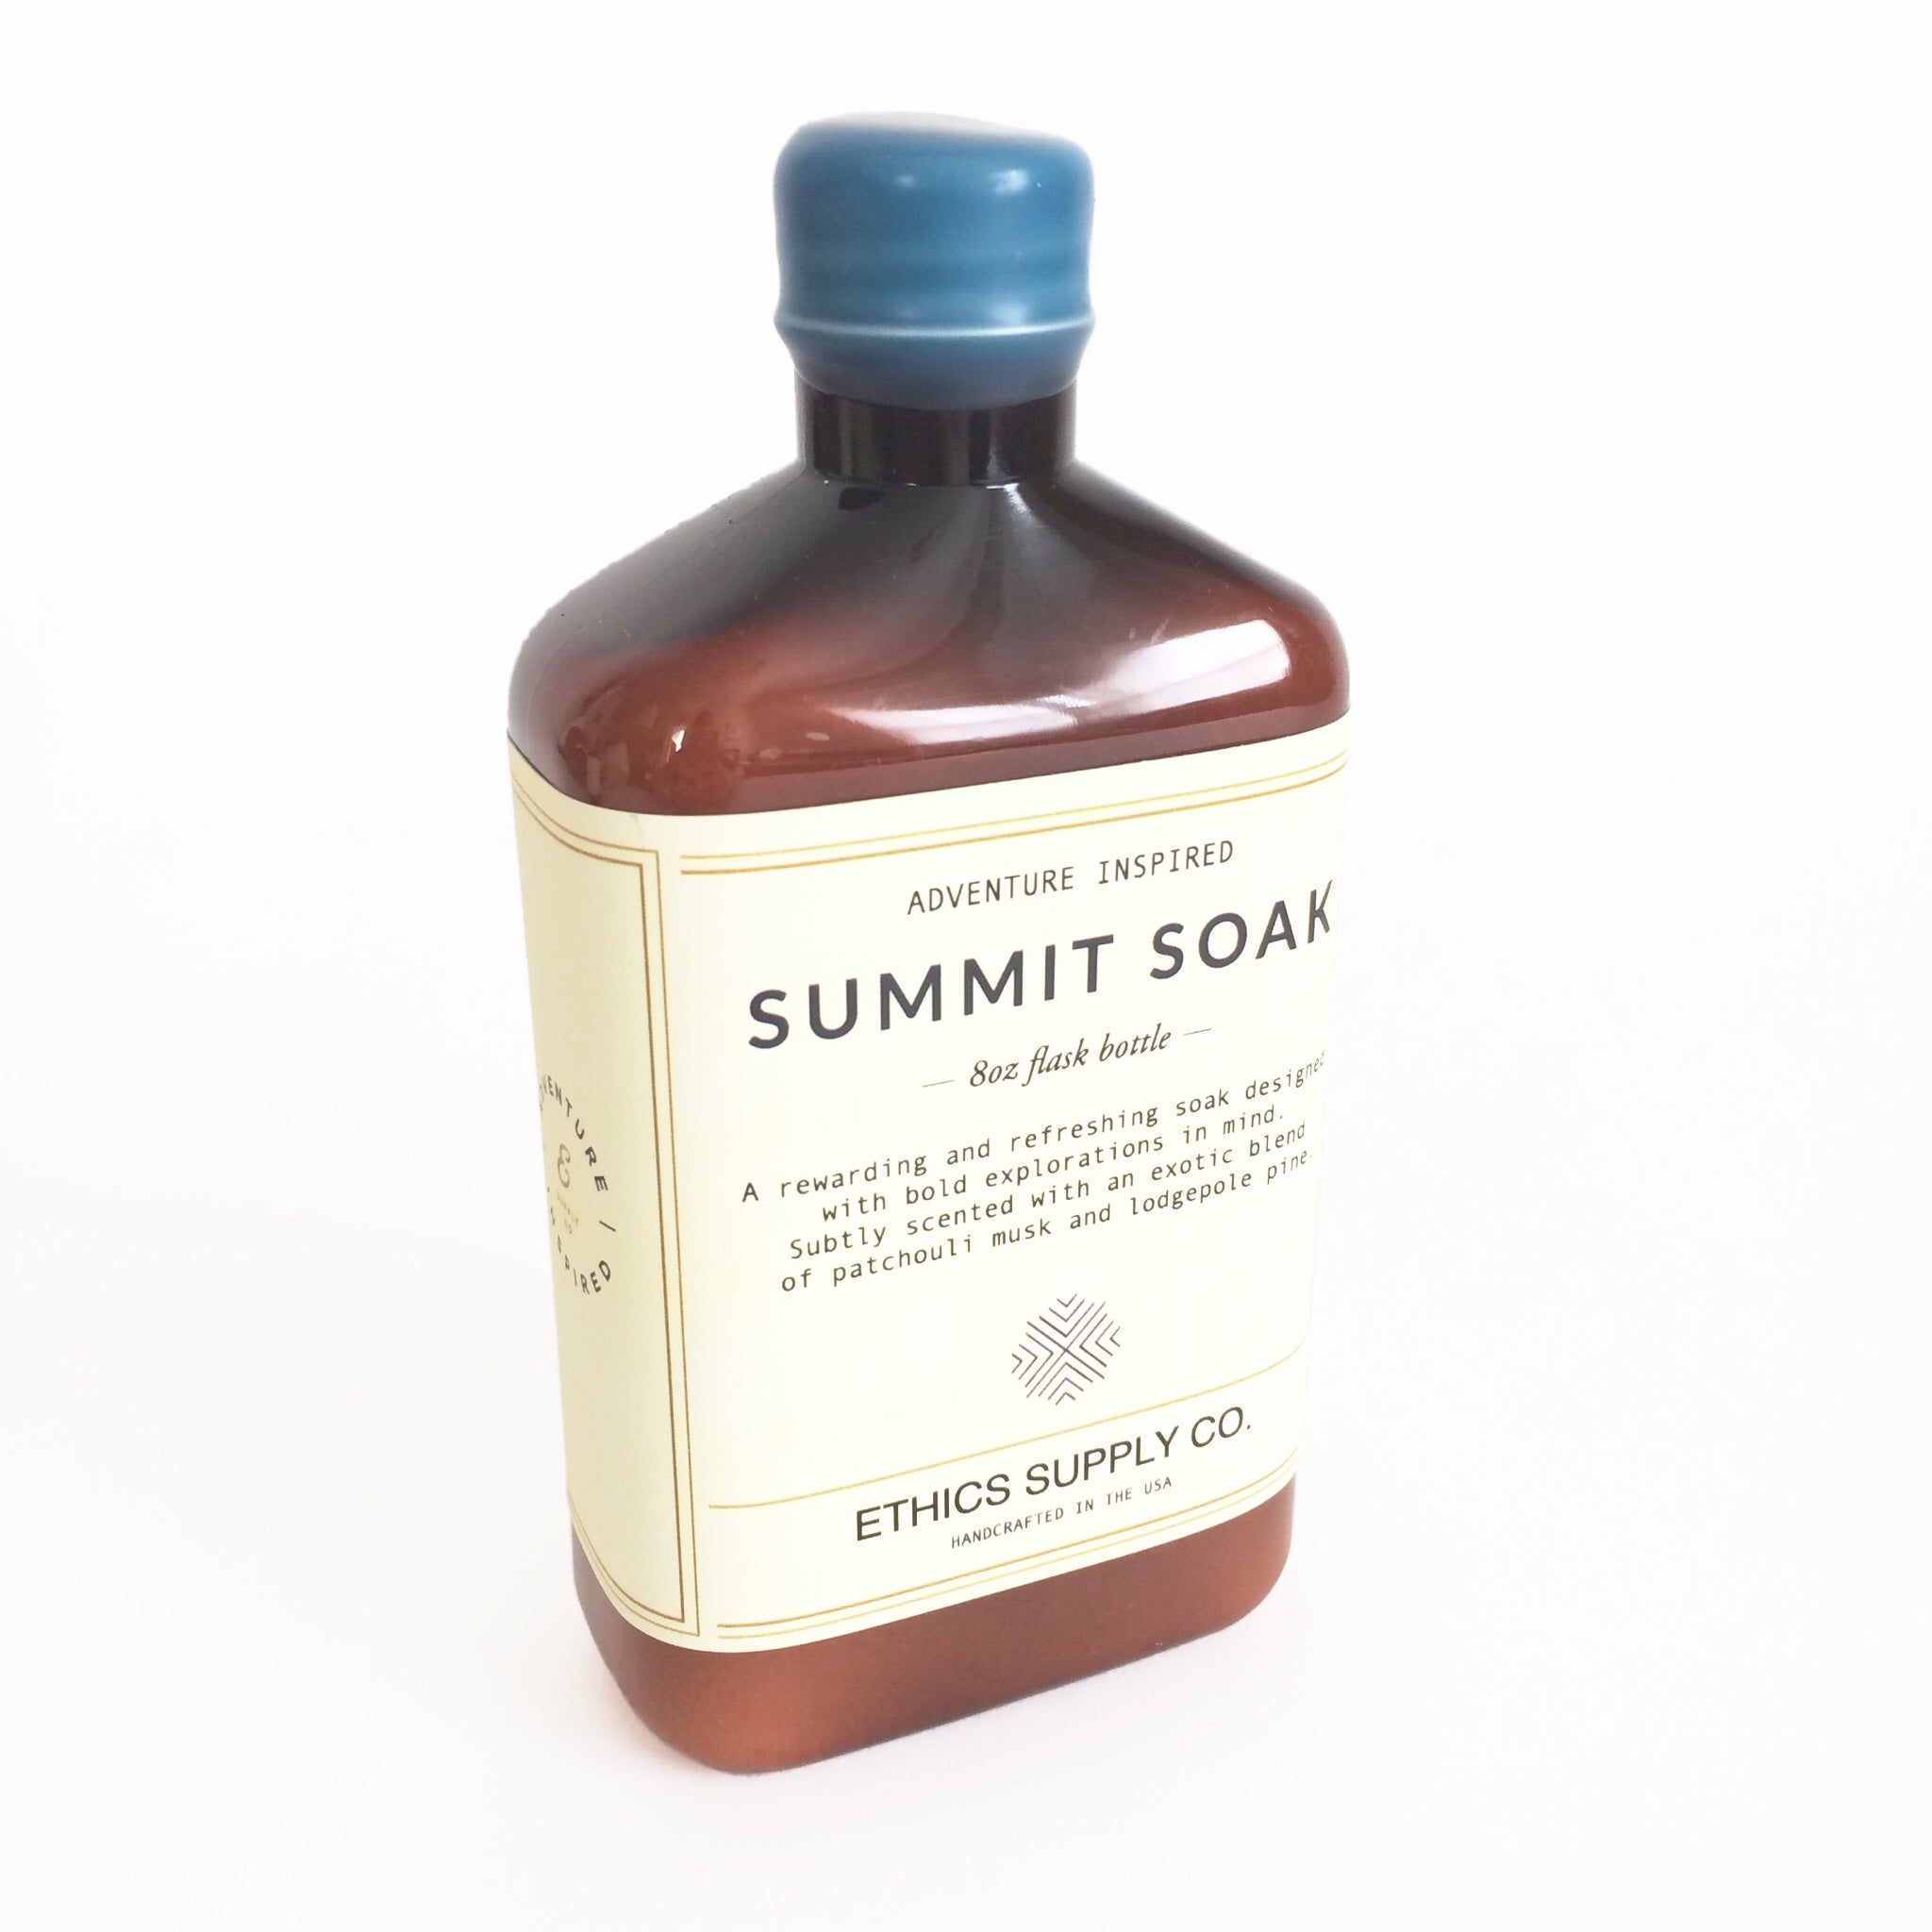 Summit Soak